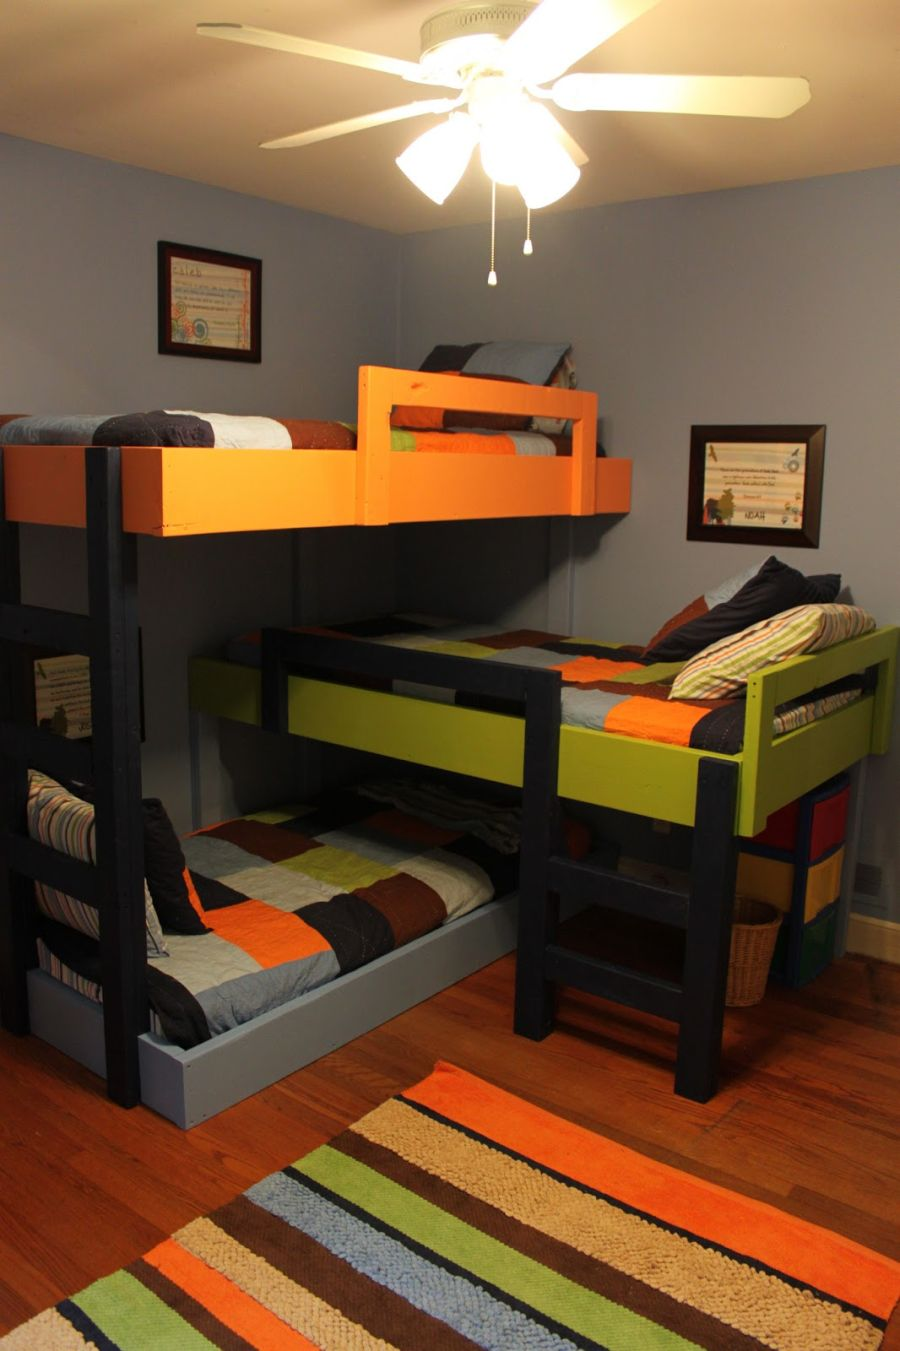 Saving Space And Staying Stylish With Triple Bunk Beds